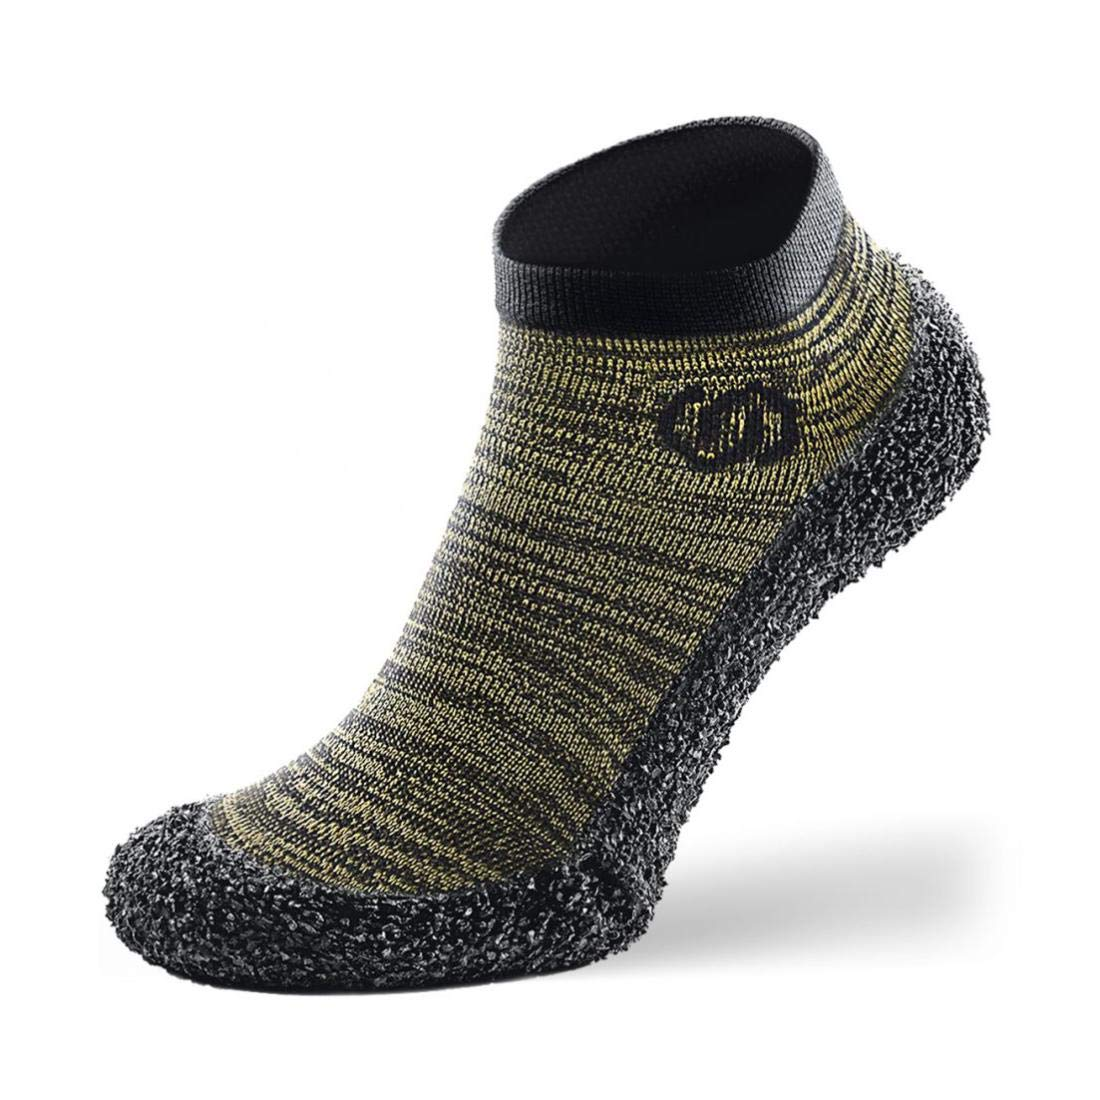 Skinners Chaussettes Mixte Adulte M Vert Olive